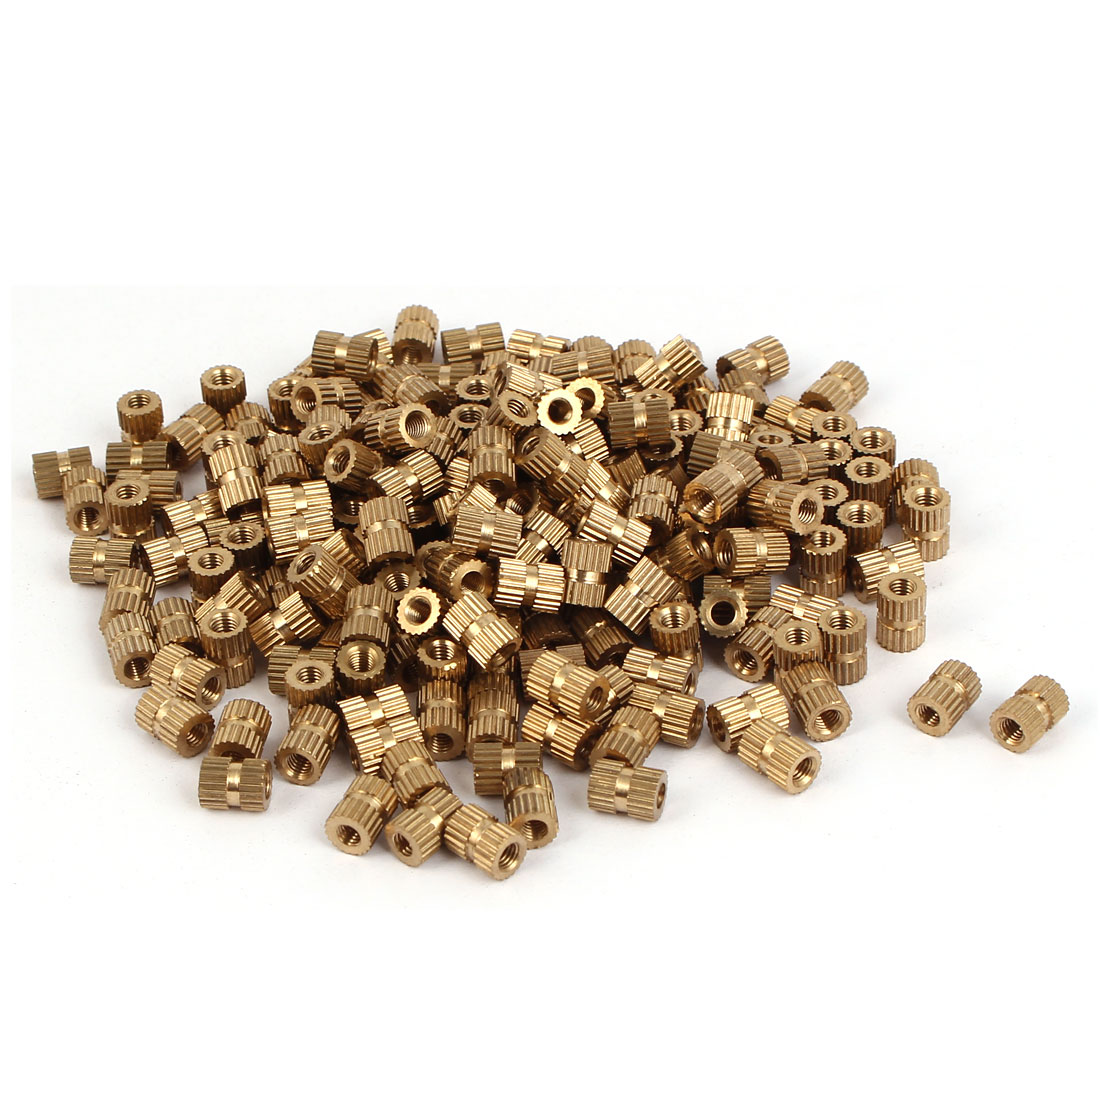 M3 x 7mm Brass Cylinder Injection Molding Knurled Insert Embedded Nuts 200PCS